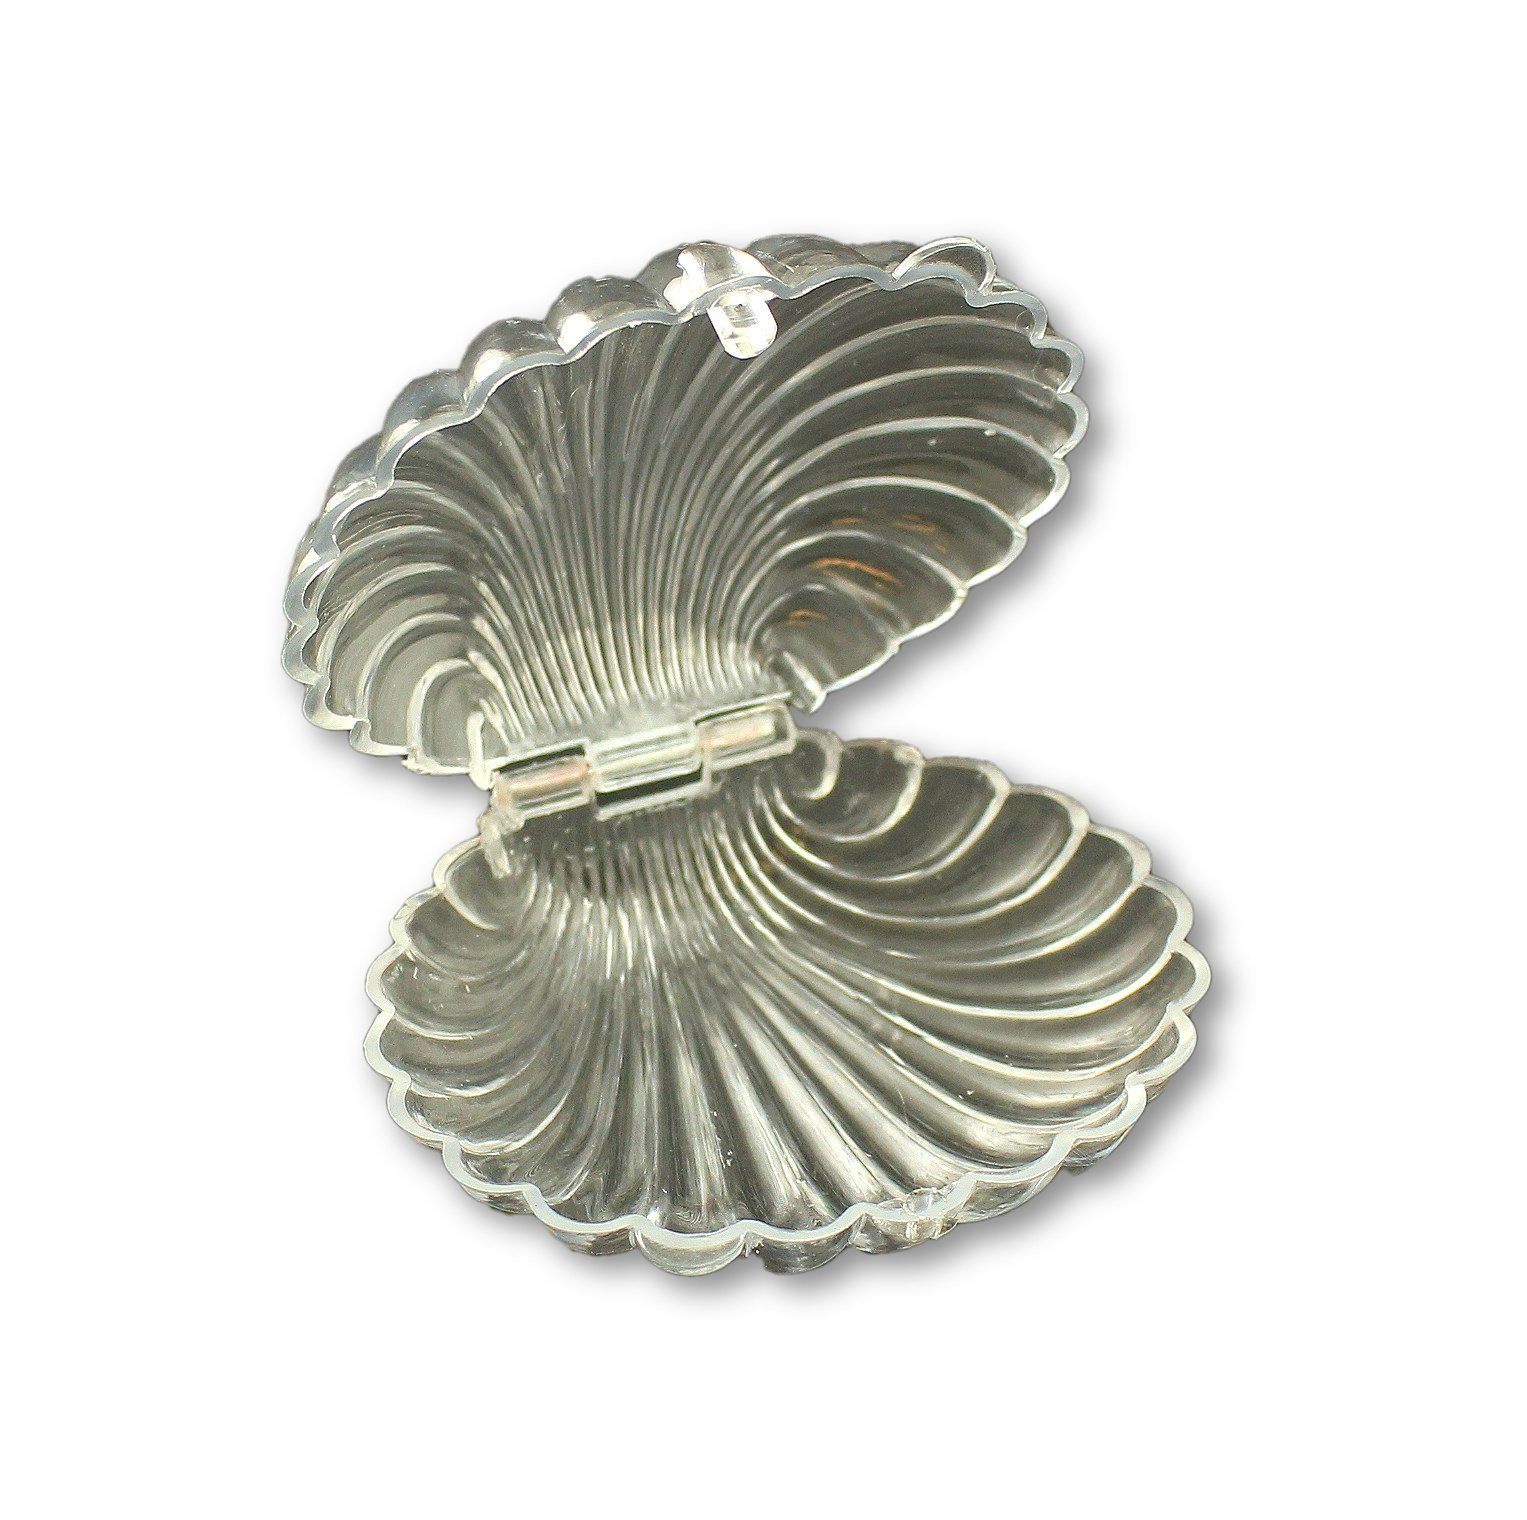 150 Shells By the Sea Authentic Seashell Beach Wedding Place Card Photo Holder